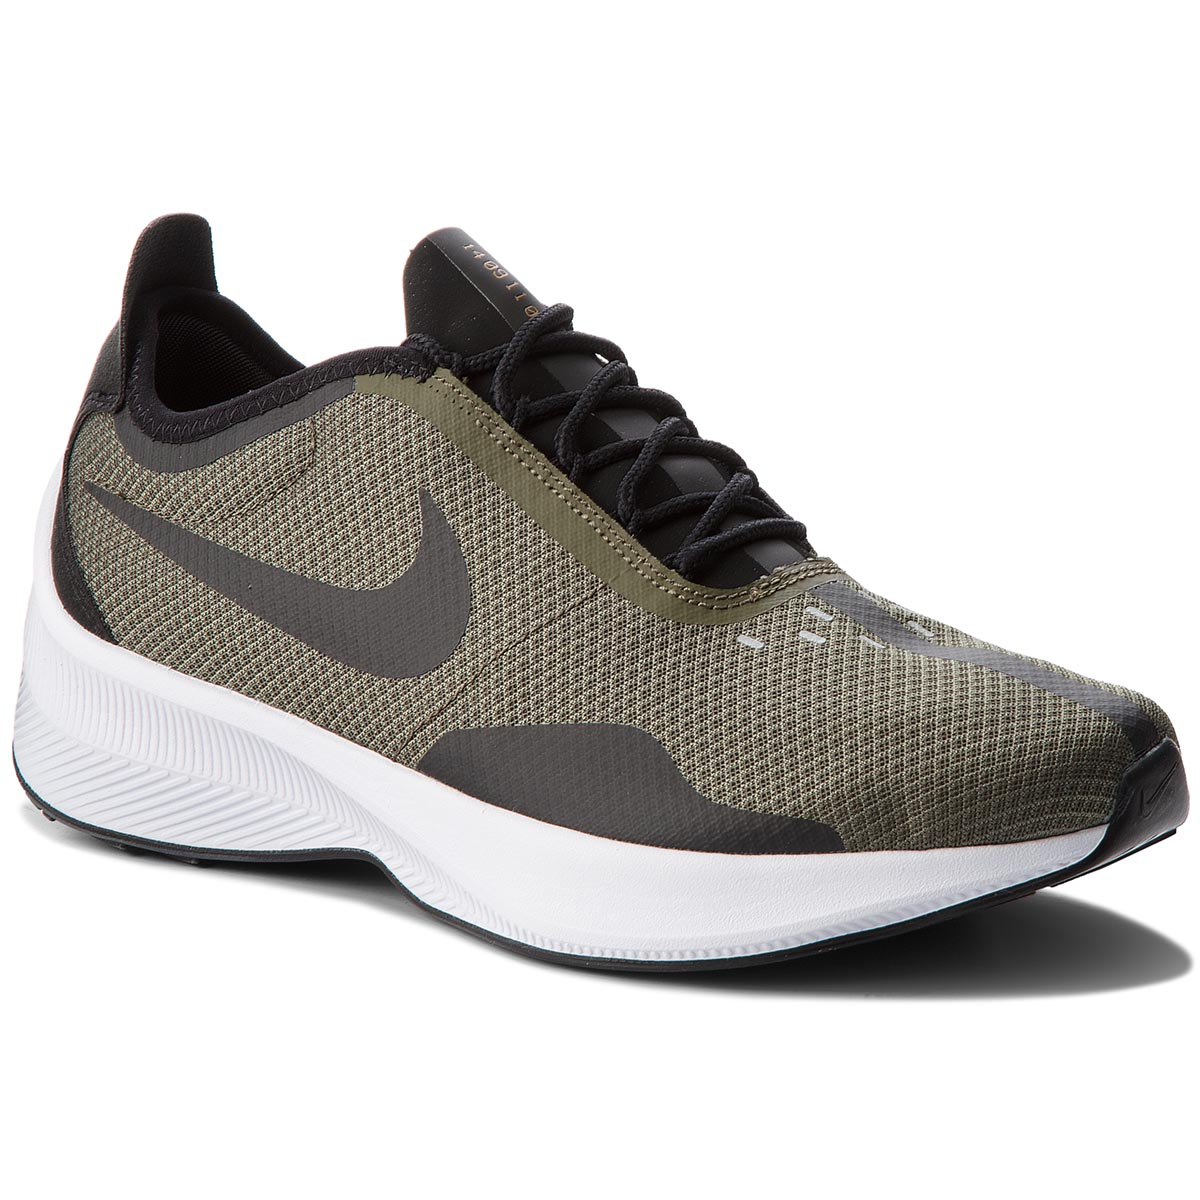 Pantofi NIKE - Exp-Z07 AO1544 200 Medium Olive/Black